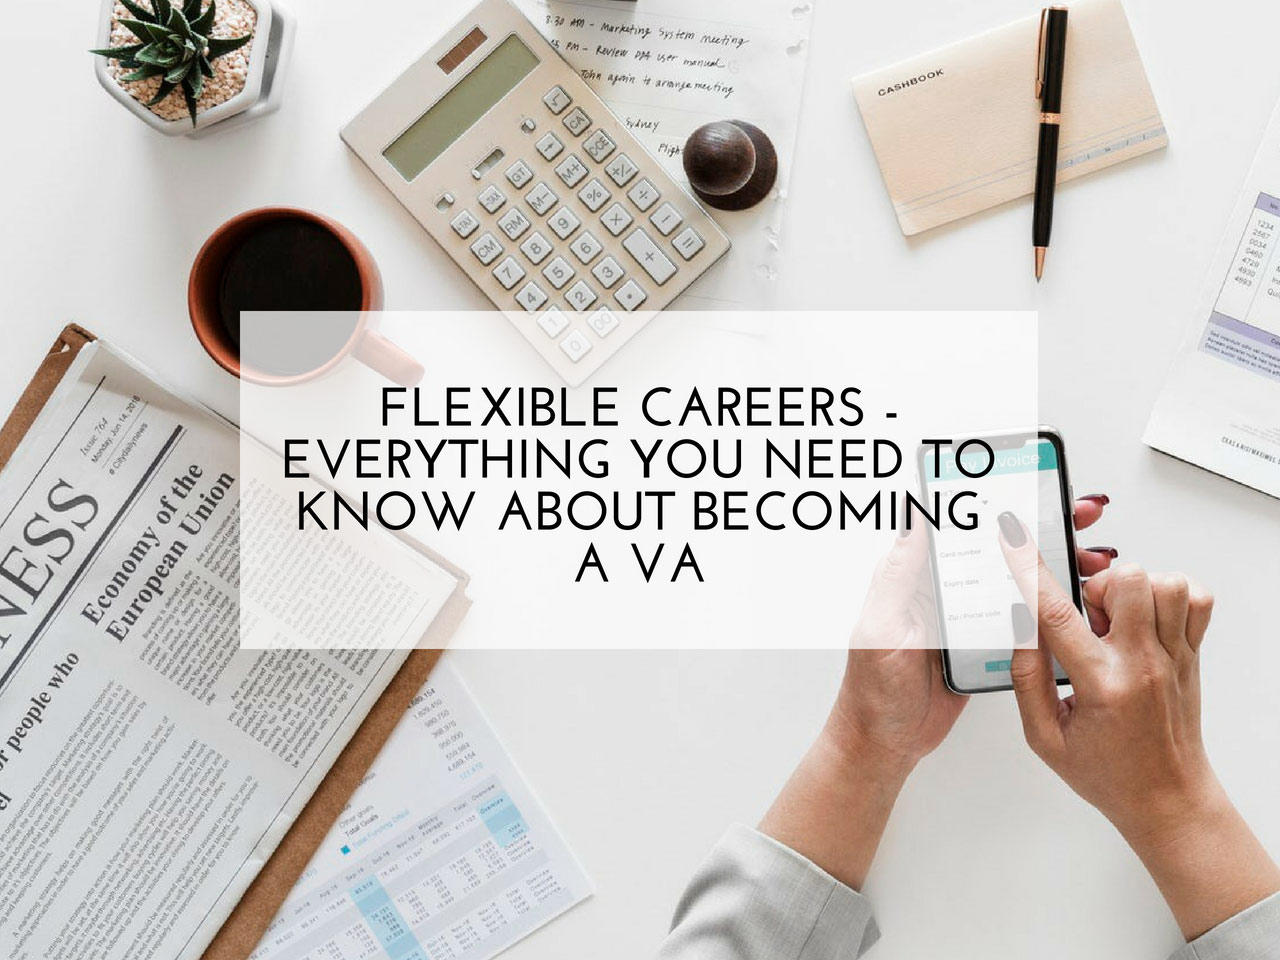 Flexible Careers- Everything you Need to Know About Becoming a VA